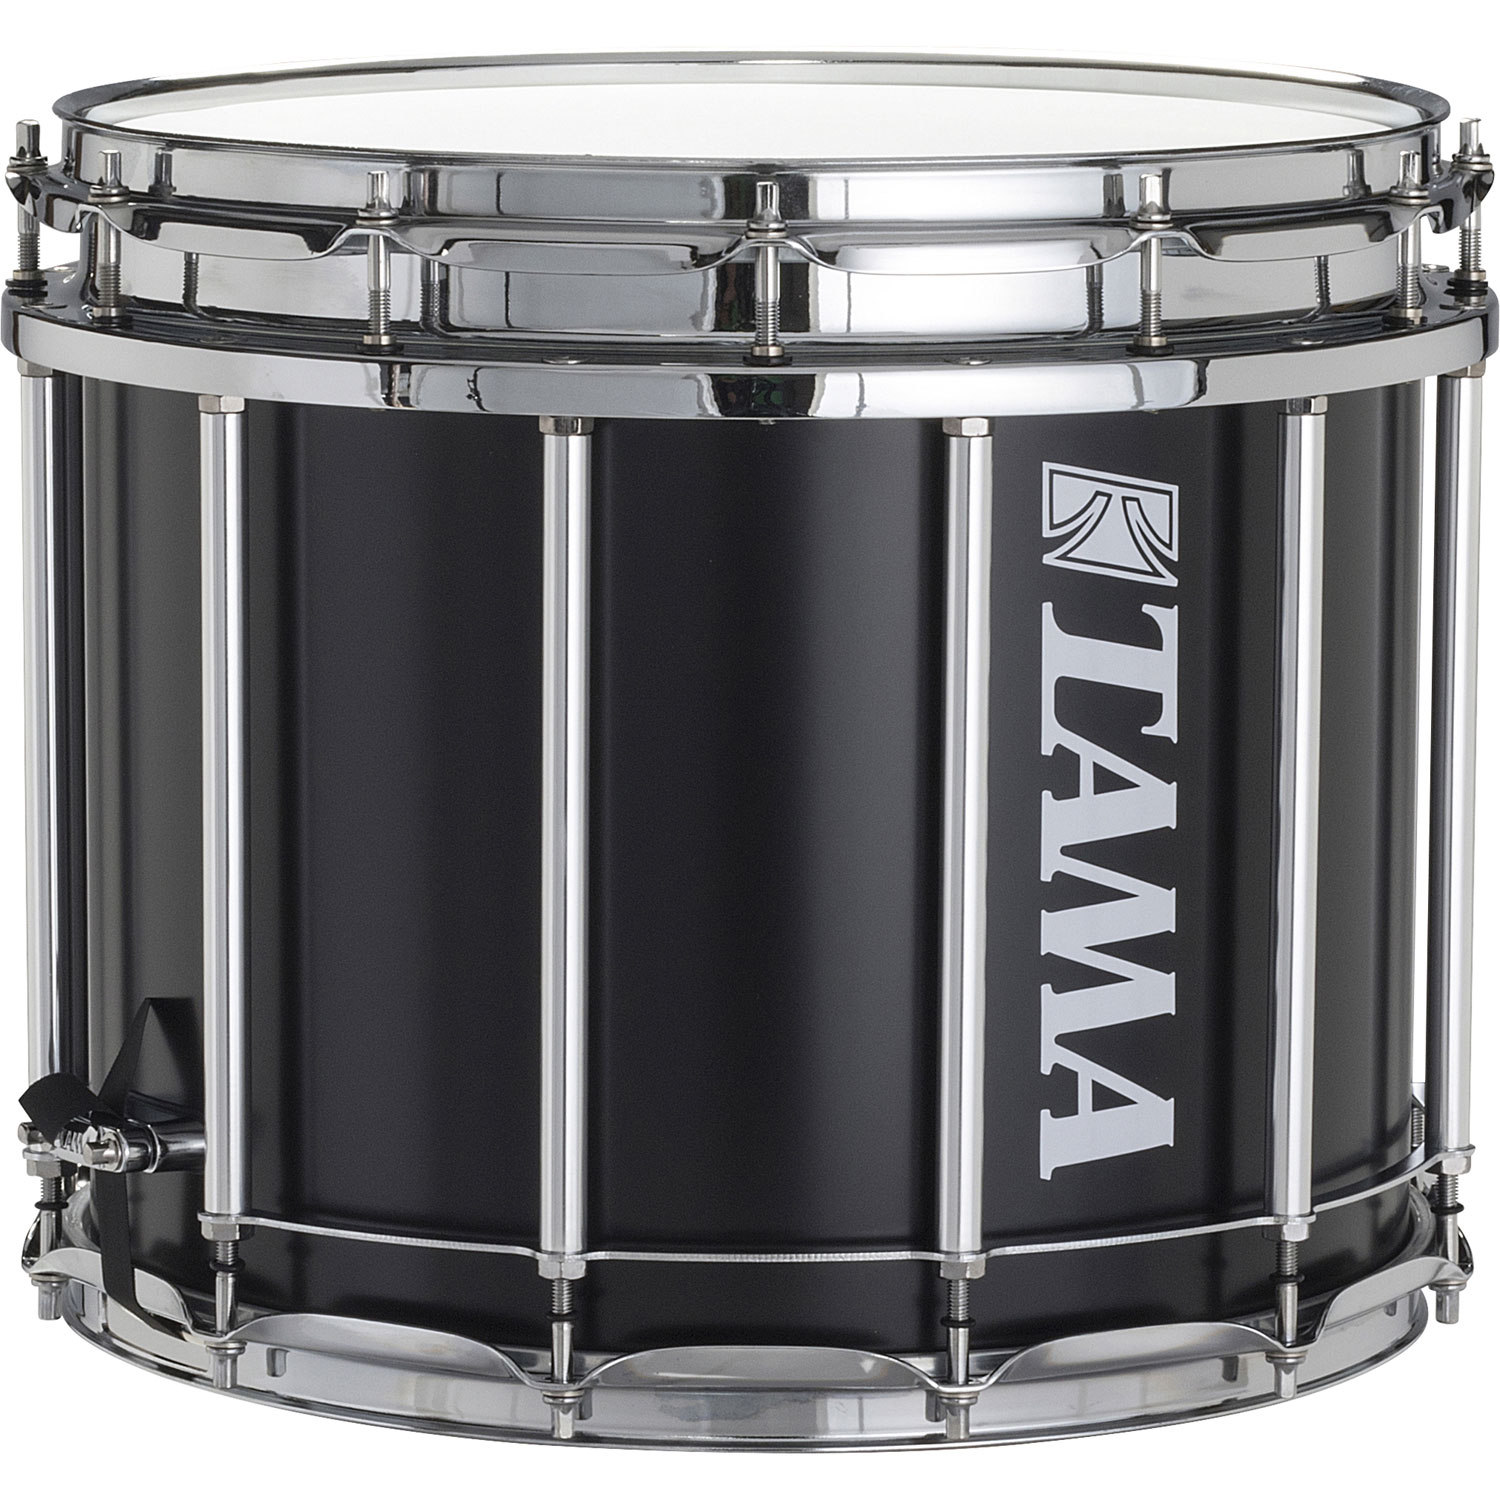 "Tama 12"" (Deep) x 14"" (Diameter) StarLight Marching Snare Drum in Satin Black Lacquer"